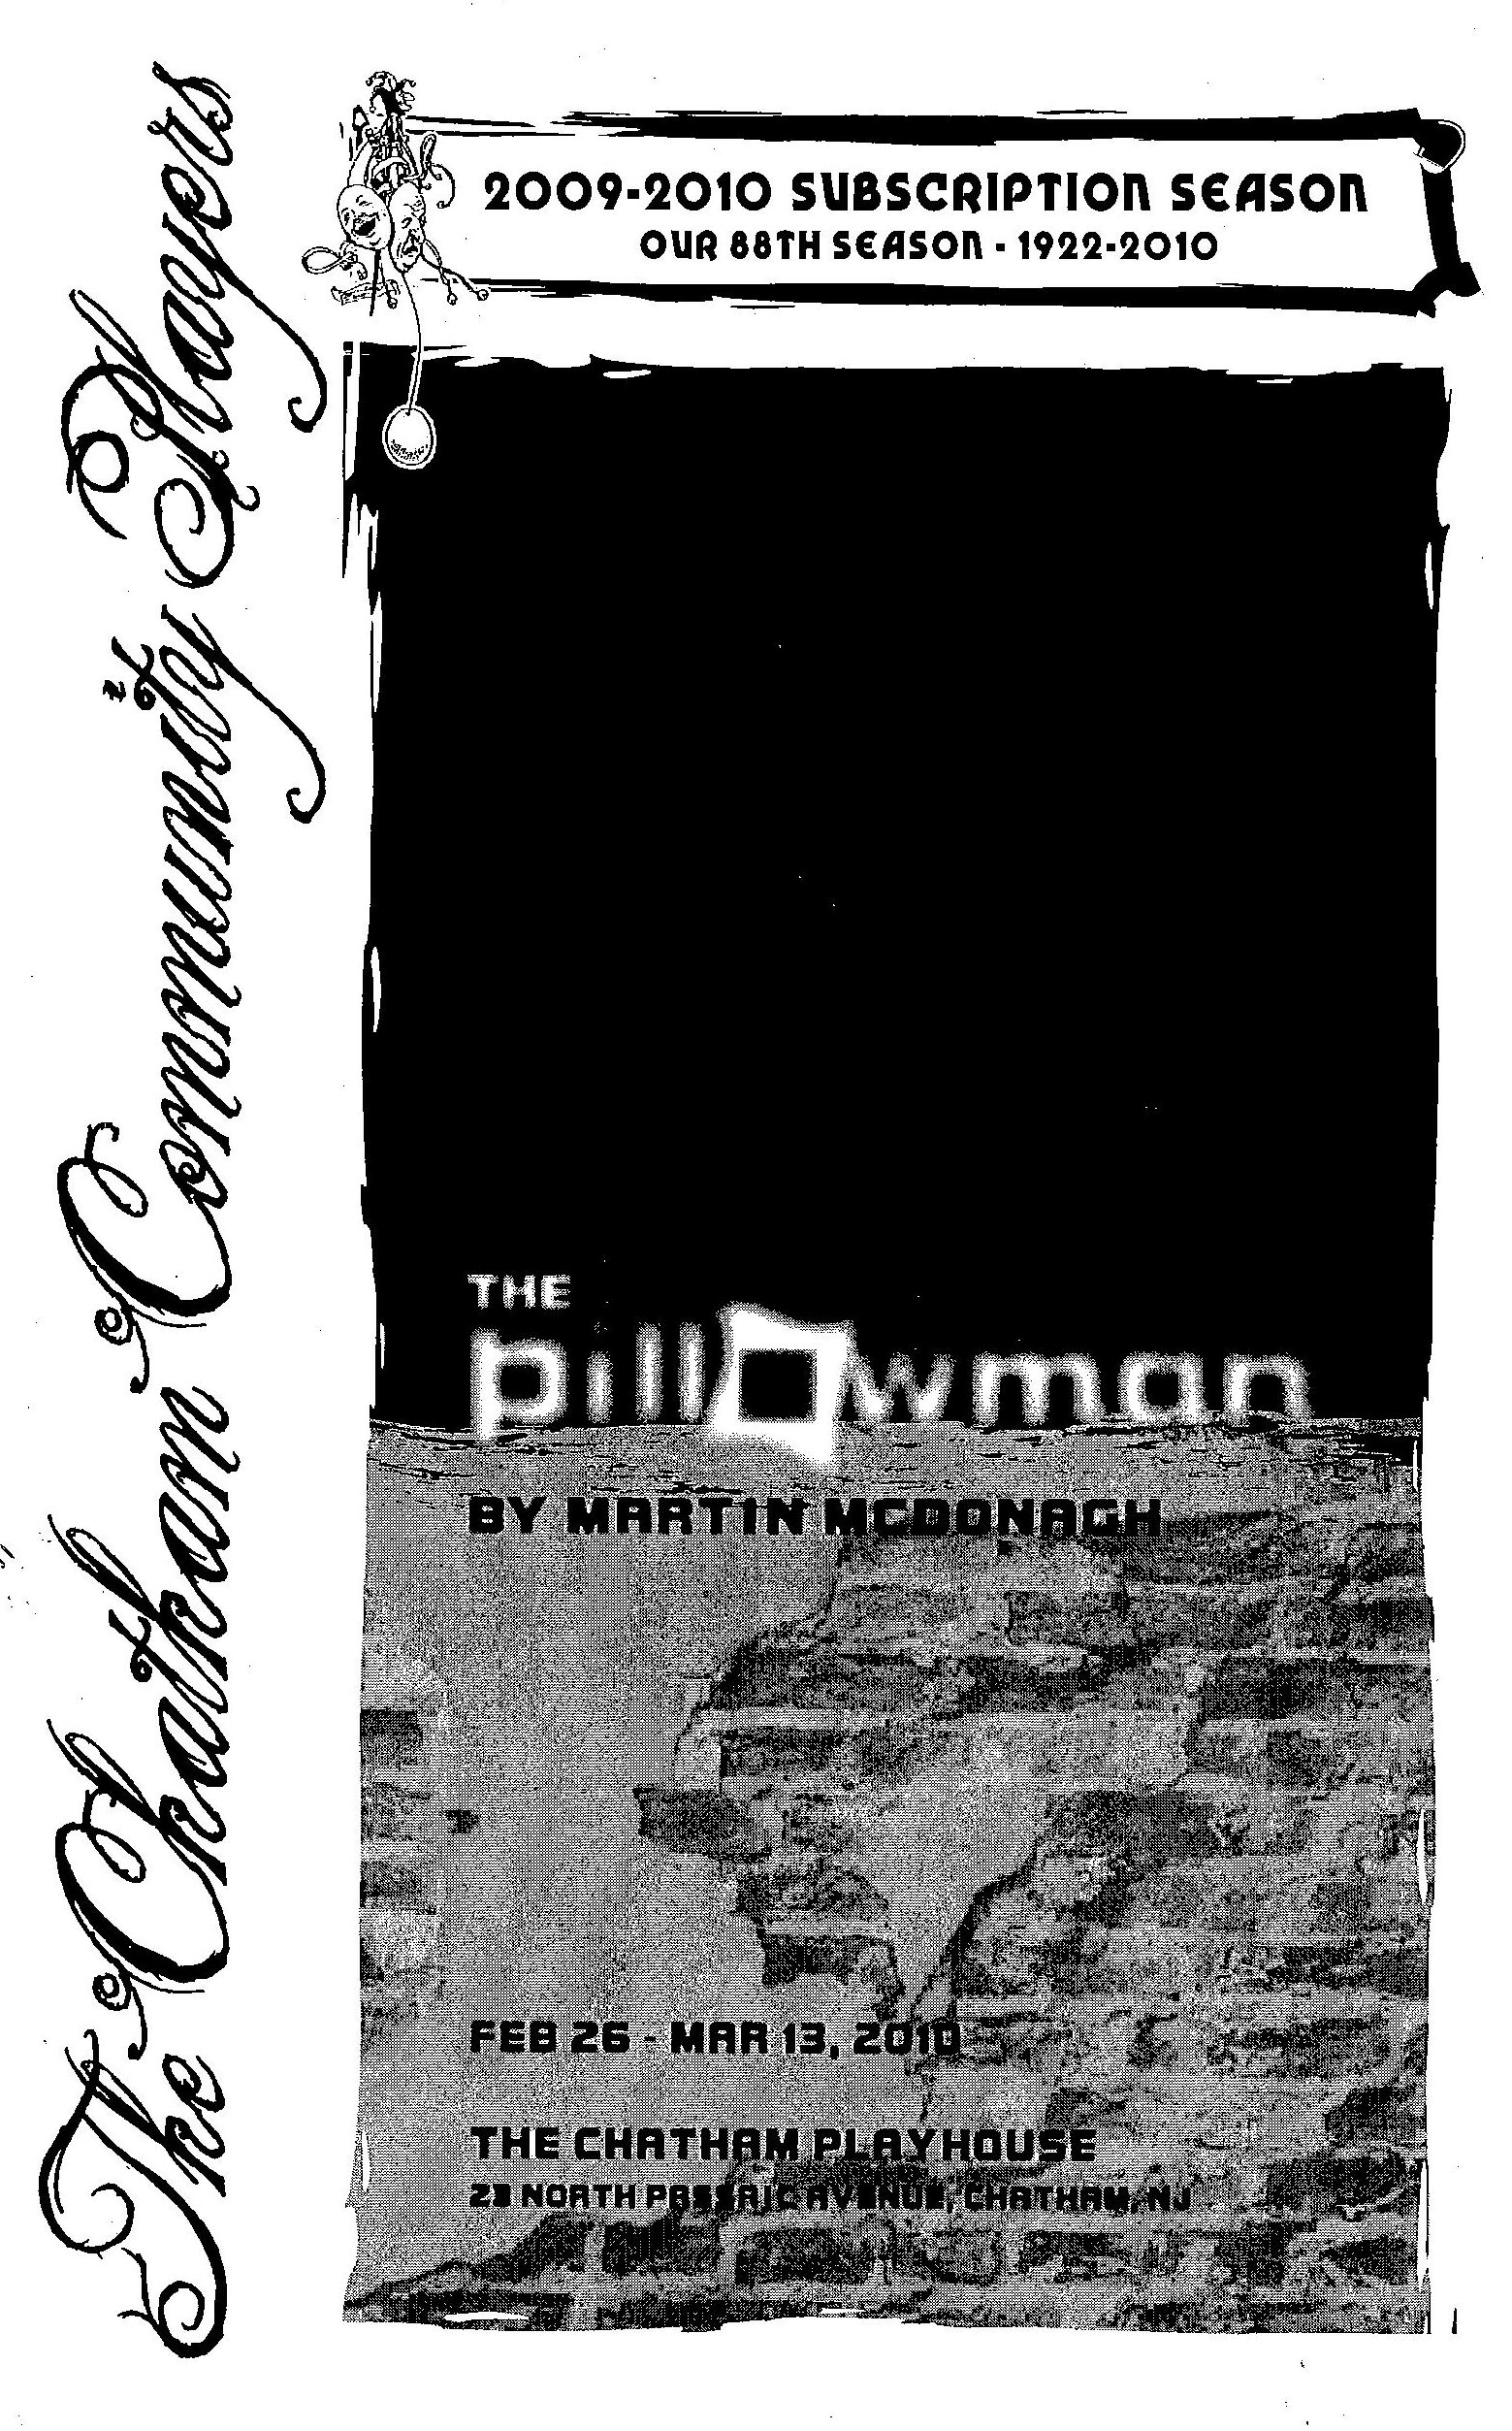 The Pillowman (2010)